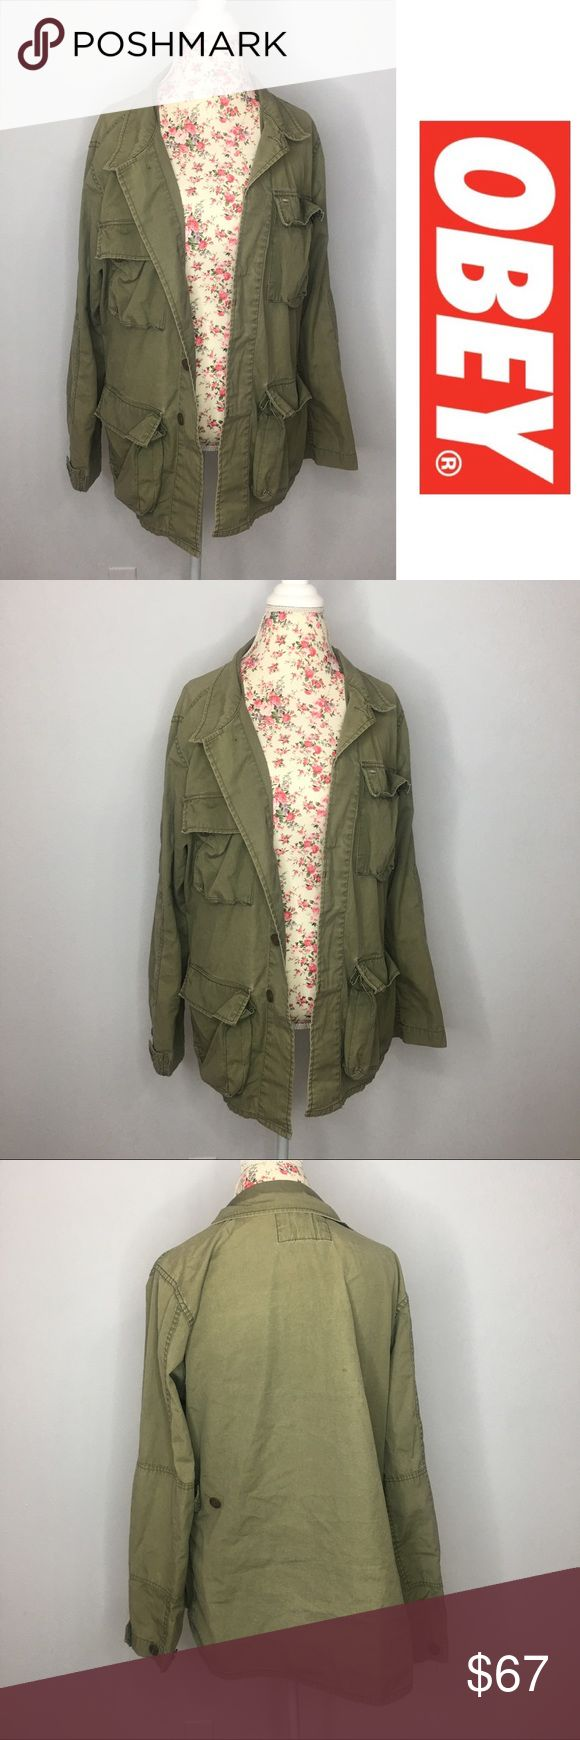 💕FLASH SALE!💕Obey Olive Green Military Jacket Gently used Obey military jacket size large. It's oversized and runs about one size up. Has some minor flaws but nothing major. No holes or tears. All zippers and buttons are in great condition. This jacket is hard to find! Accepting all reasonable offers Obey Jackets & Coats Utility Jackets